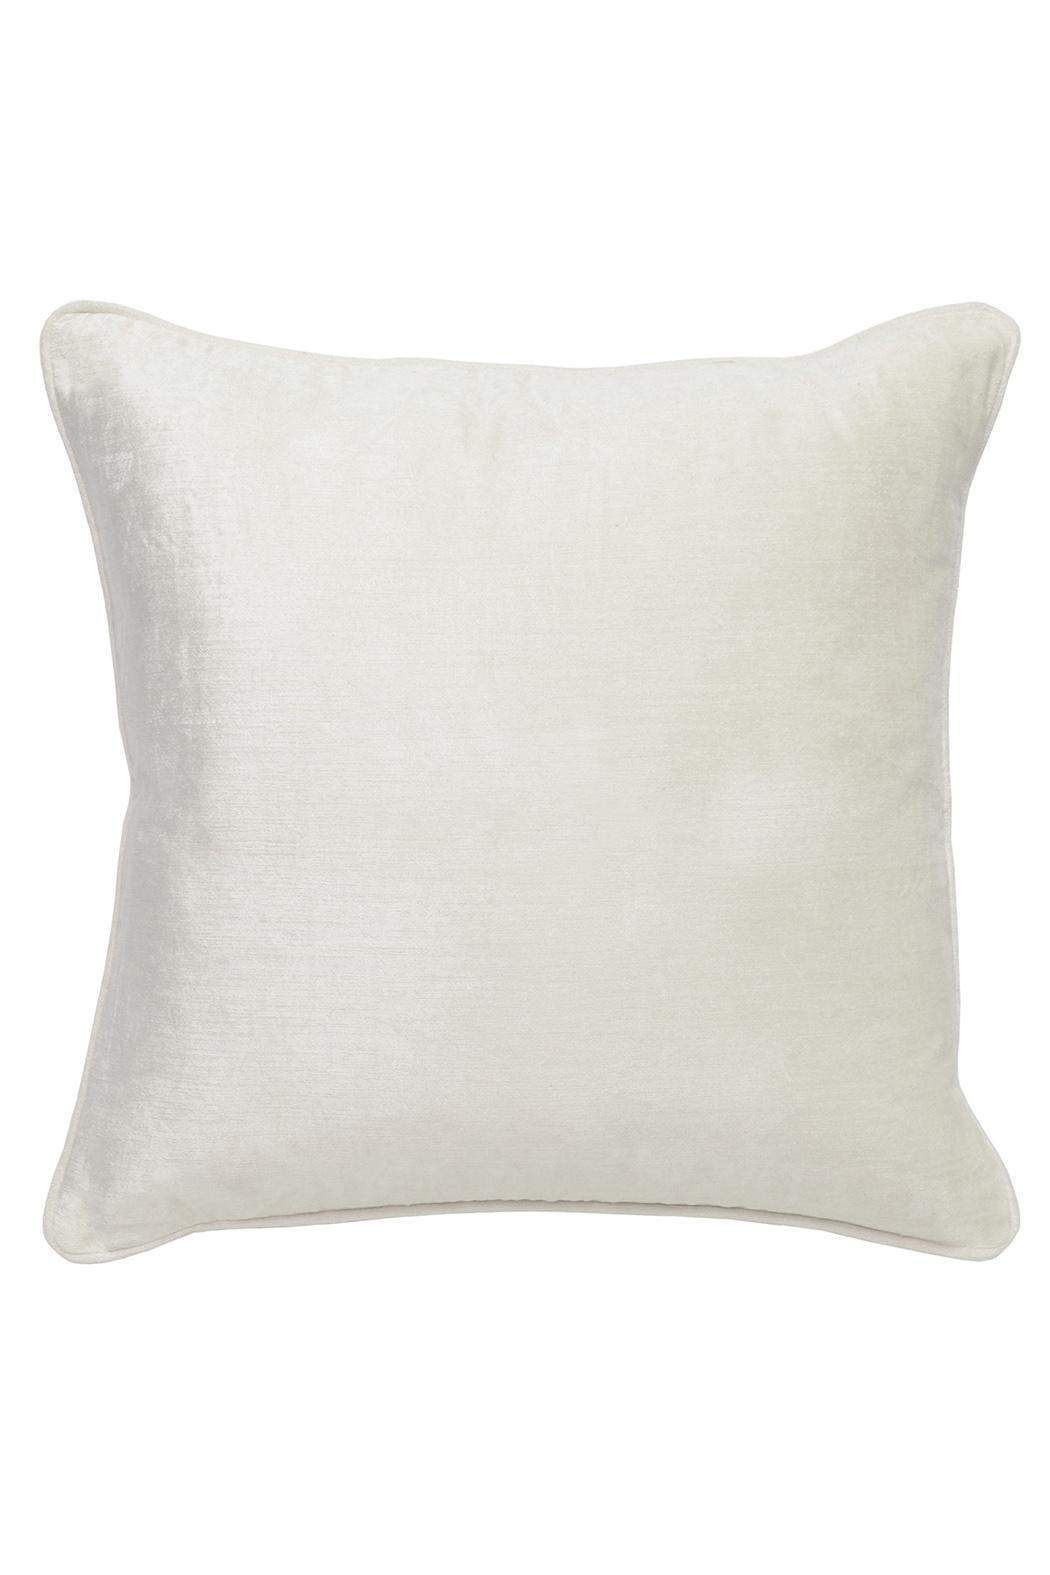 """Influenced by classical Victorian era design, the Adore collection will unveil a world of timeless romance. Rich embellishments with ethereal designs and soft textures allow these pillows to transition effortlessly between seasons.    Dimensions:22"""" x 22""""   Audrey Ivory Pillow by Villa Home Collection. Home & Gifts - Home Decor - Pillows & Throws Georgia"""